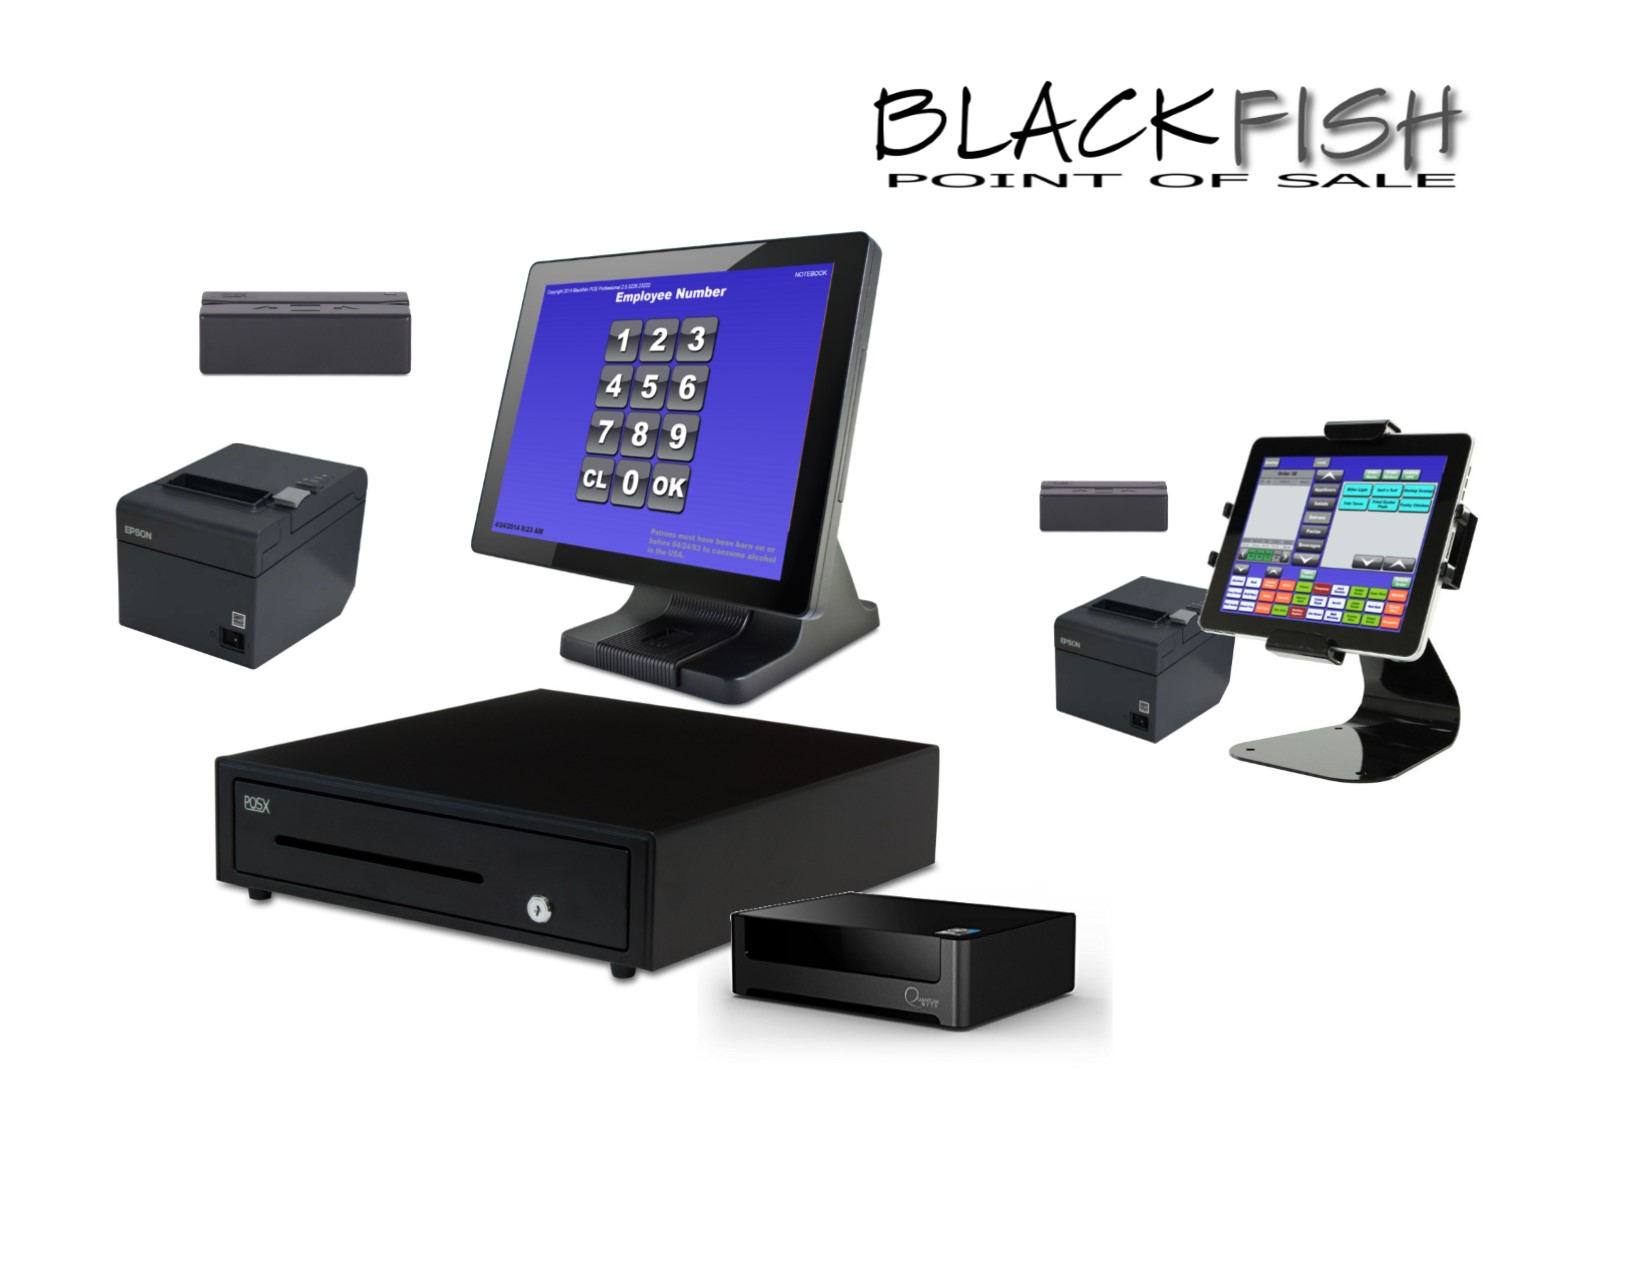 2 Station Blackfish Pos System With Tablet